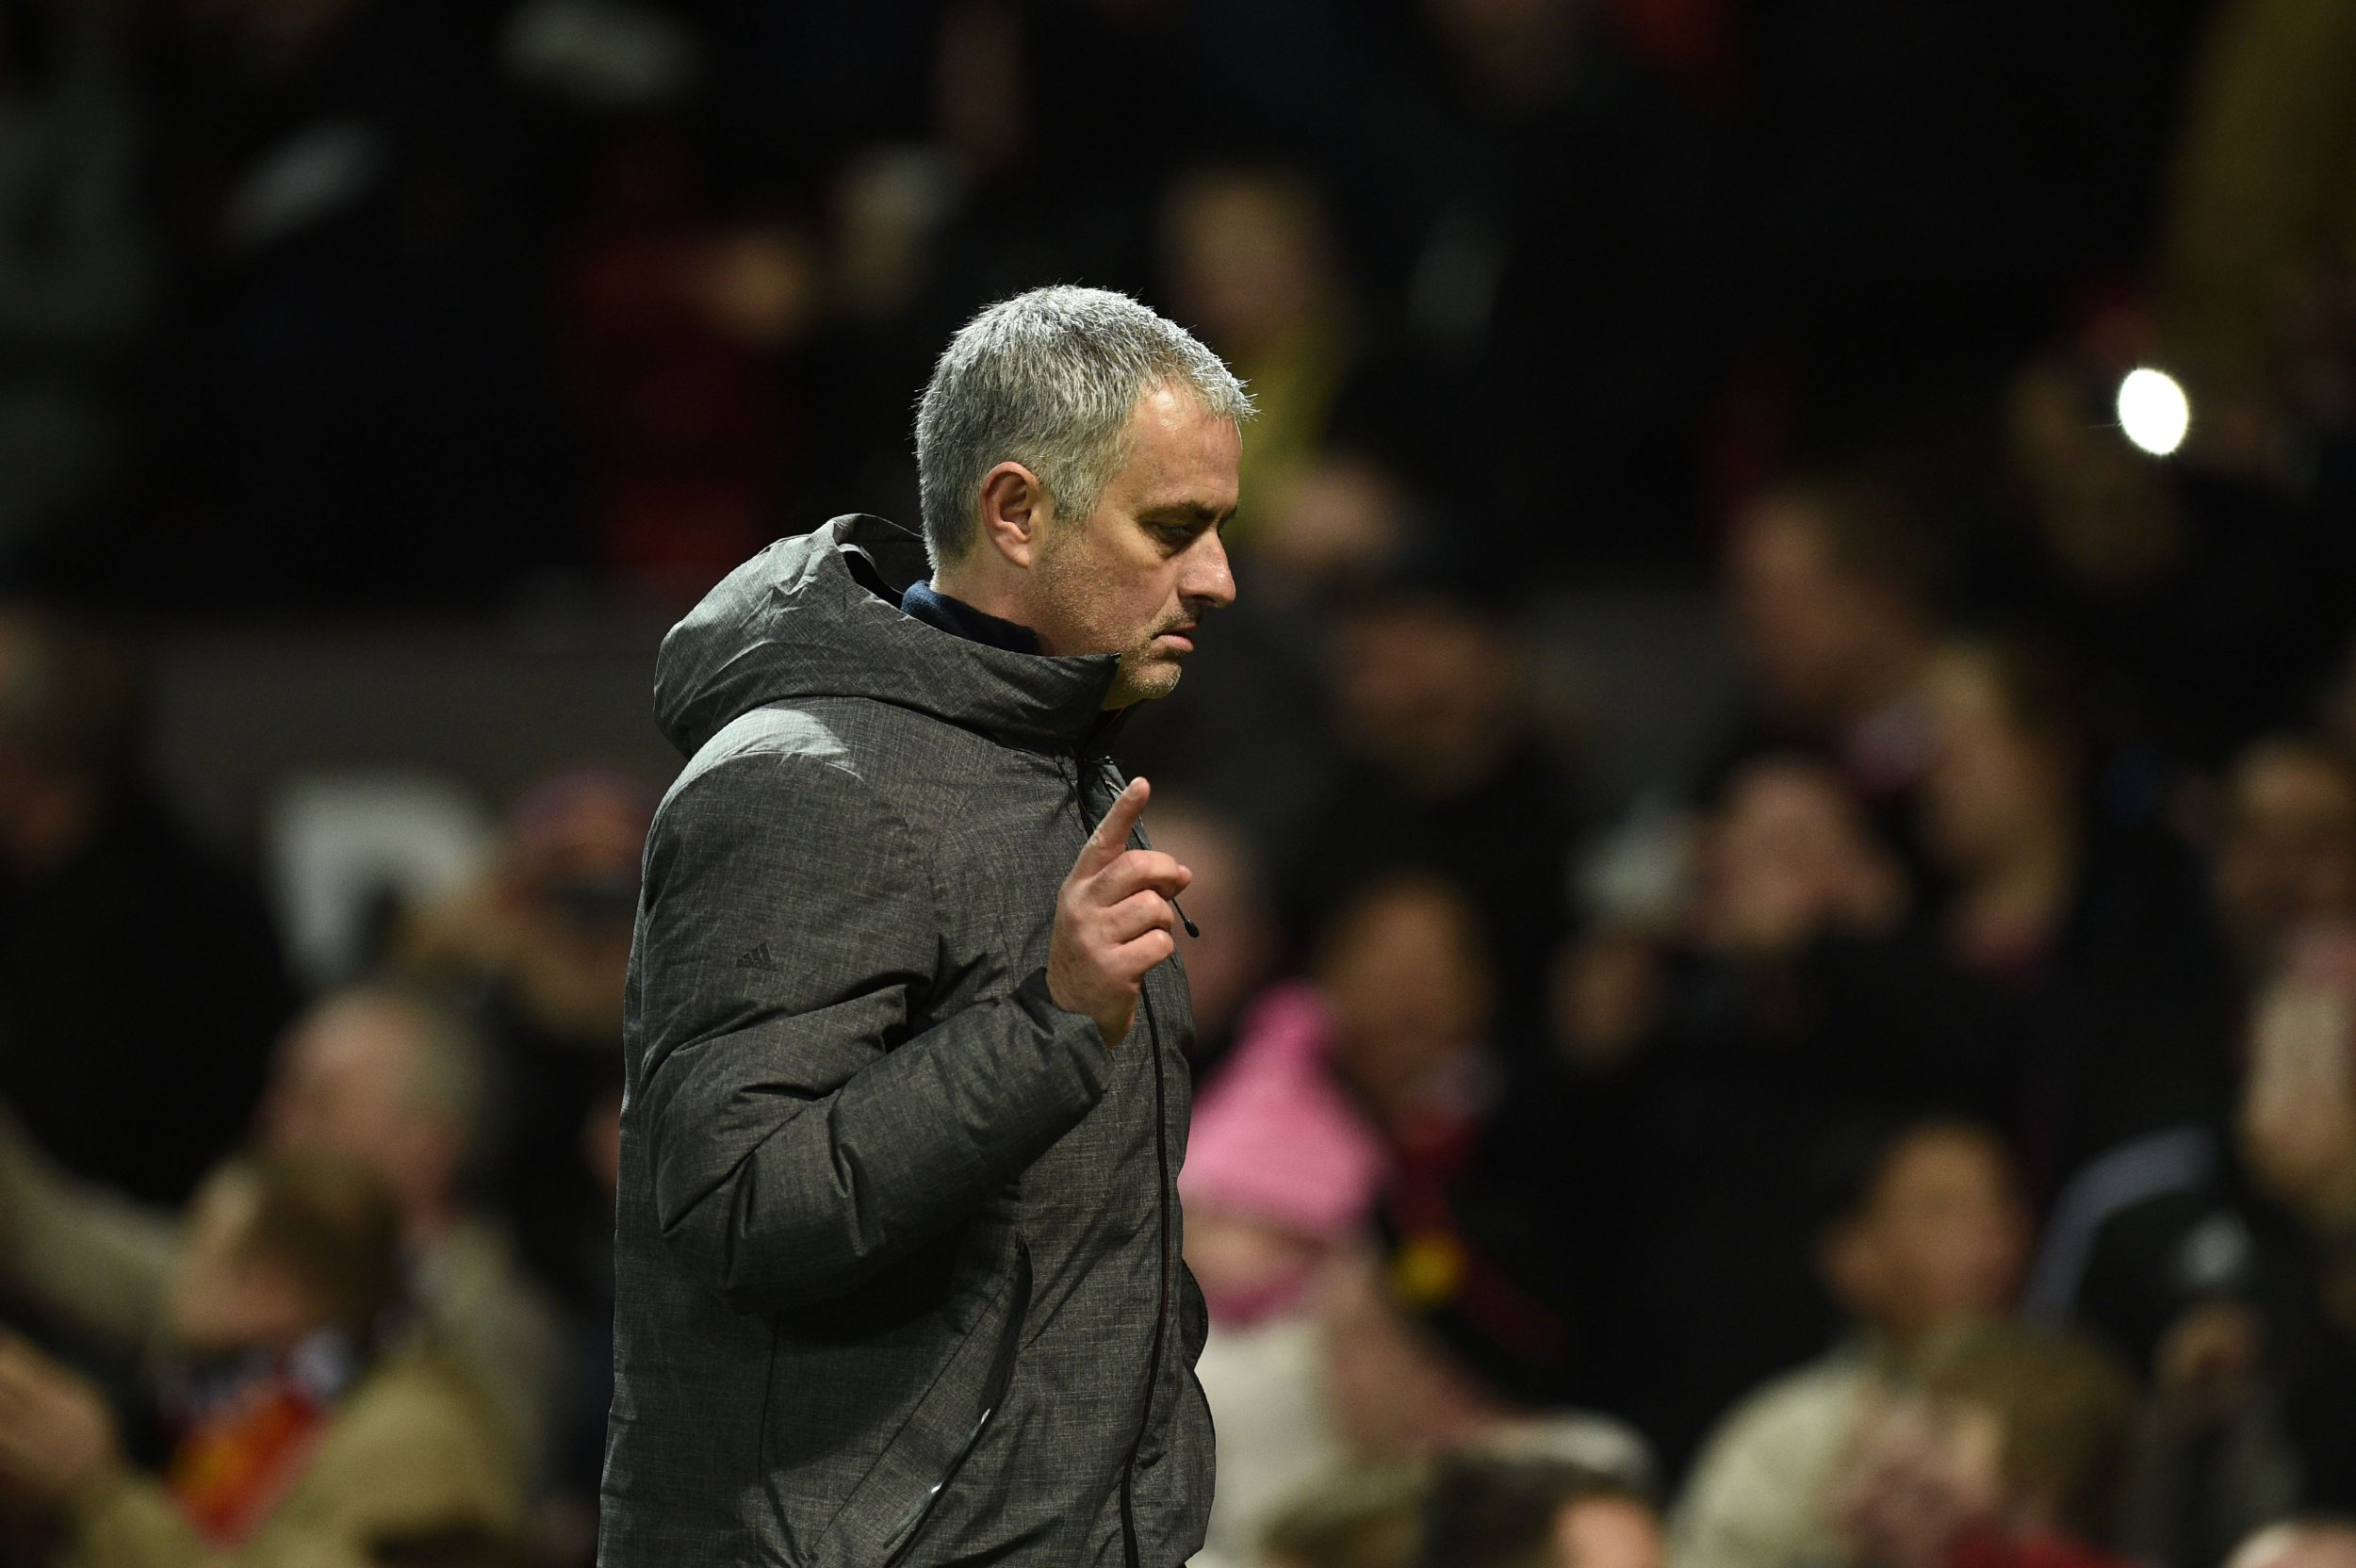 Manchester United manager Jose Mourinho at Old Trafford, England.